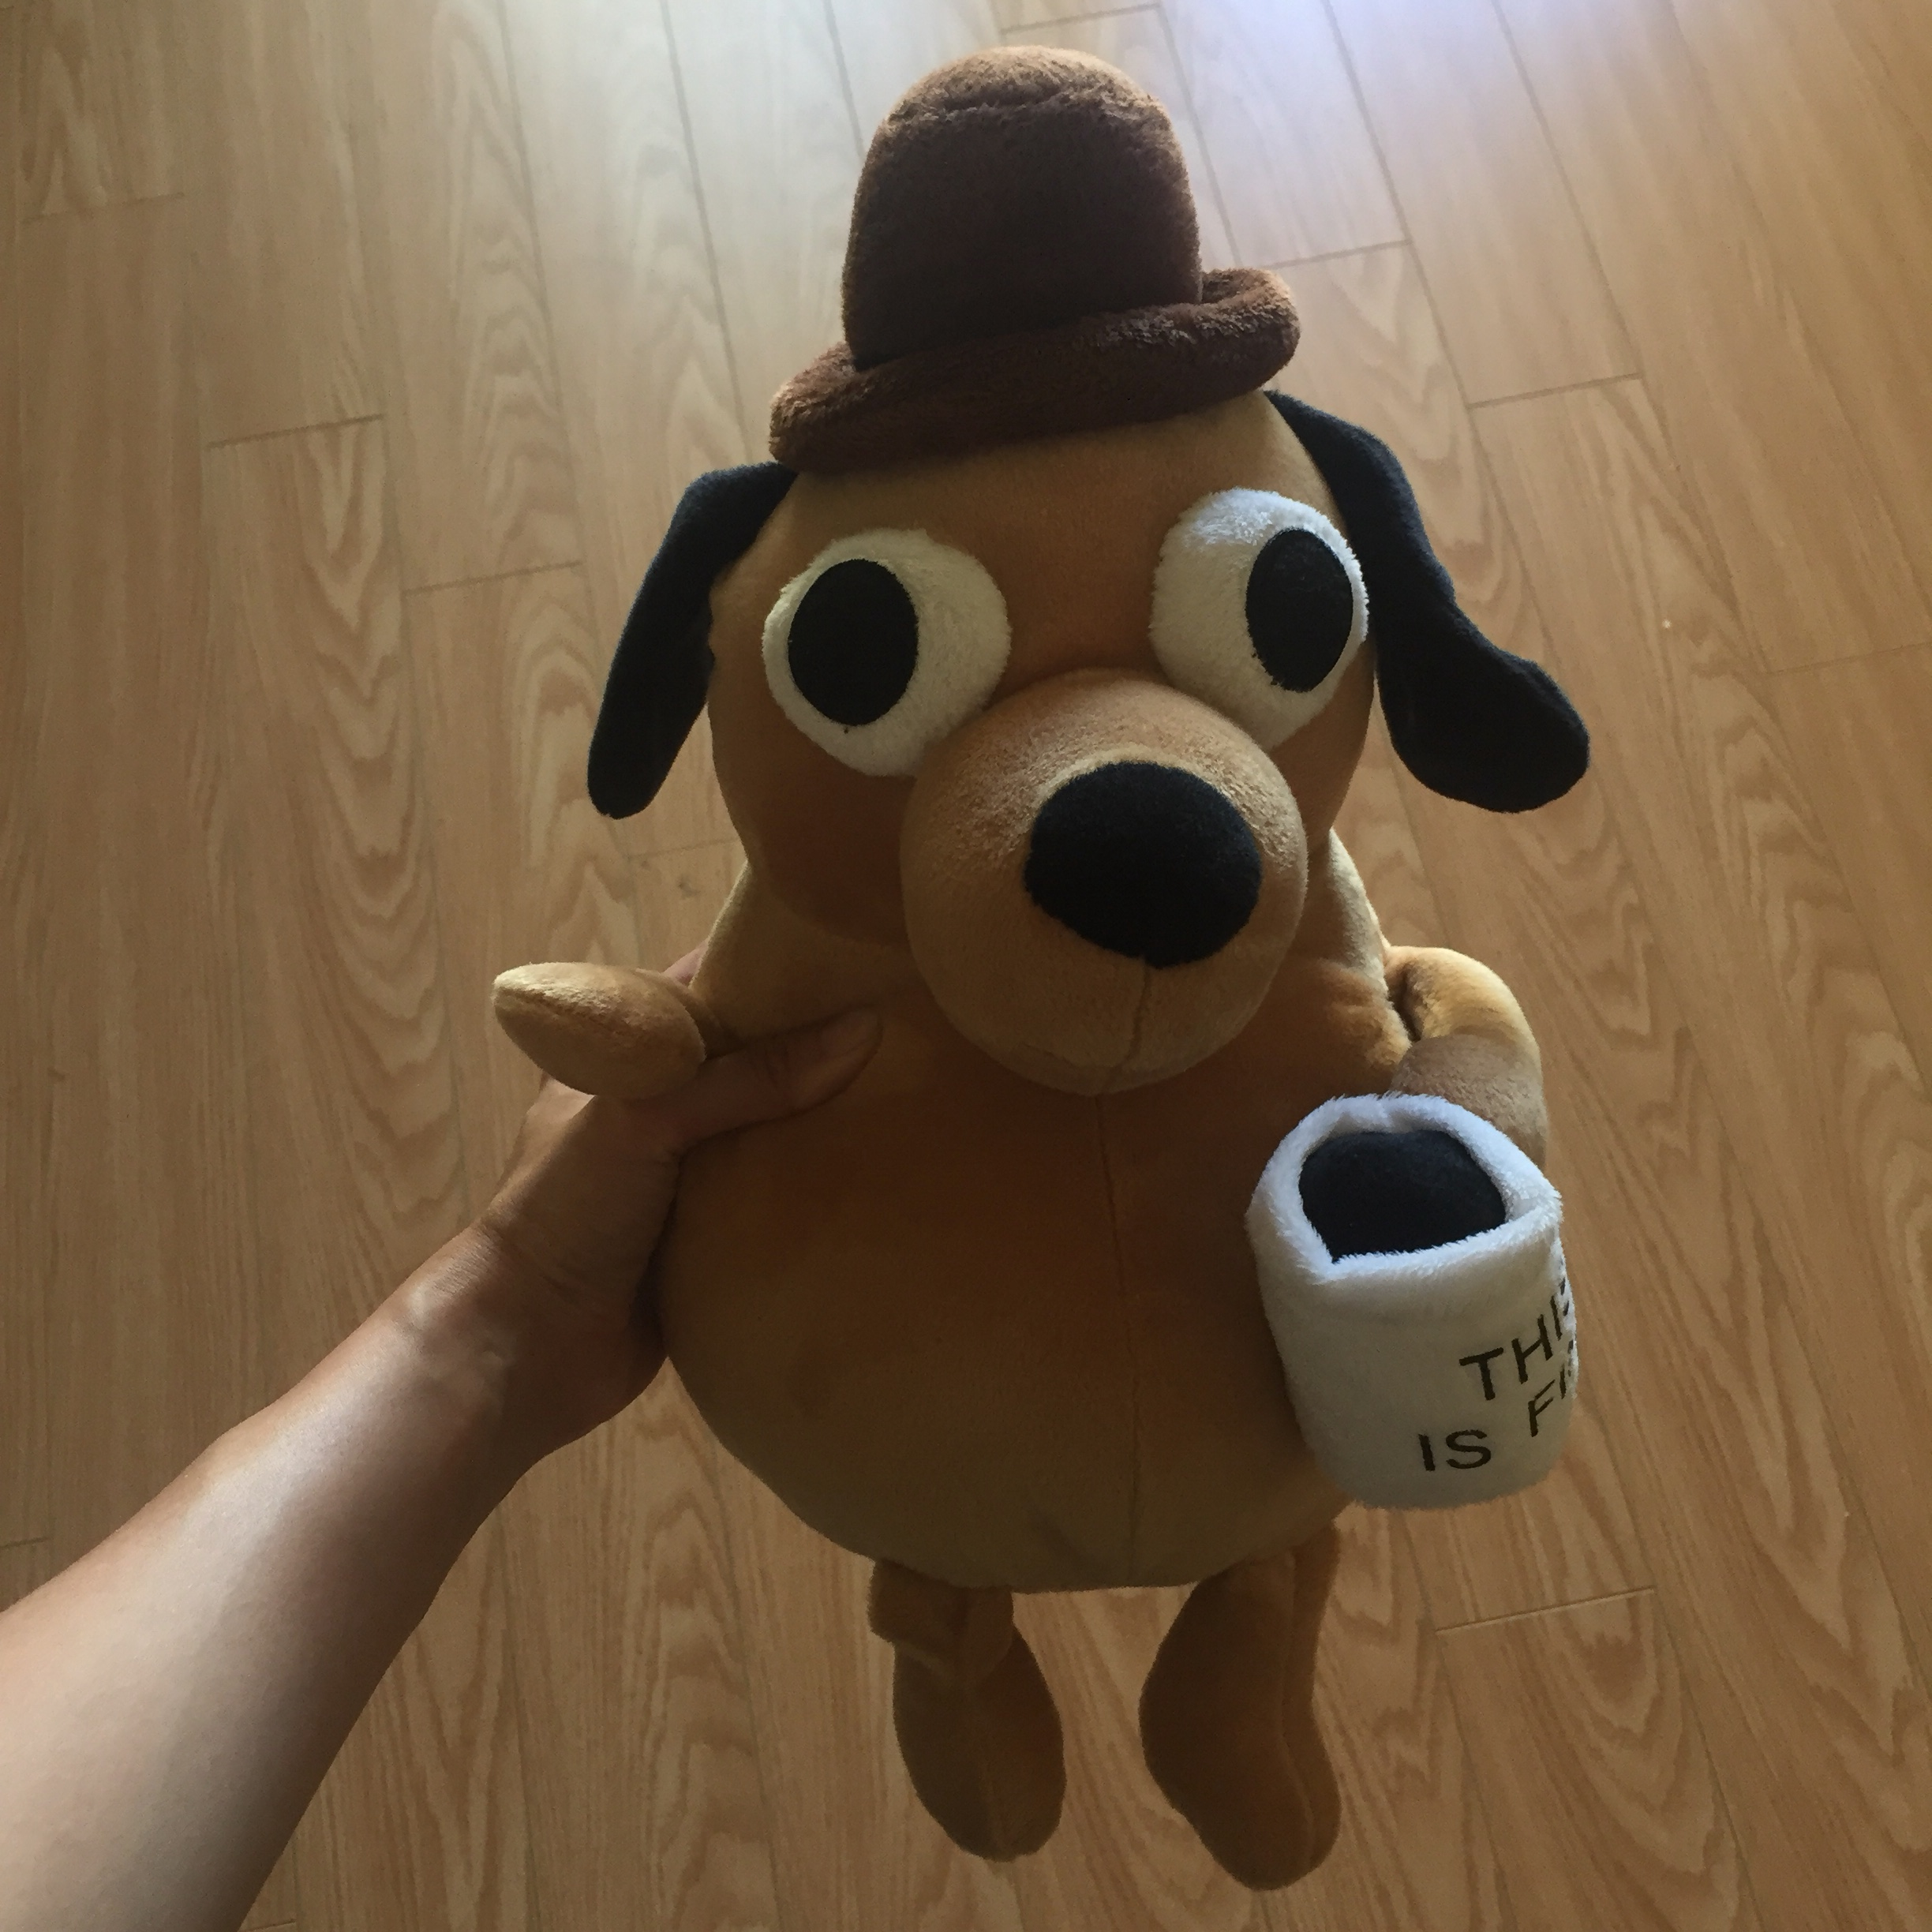 This Is Fine Dog Stuffed Animal, This Is Fine Dog Plush By Kc Green Great Depop